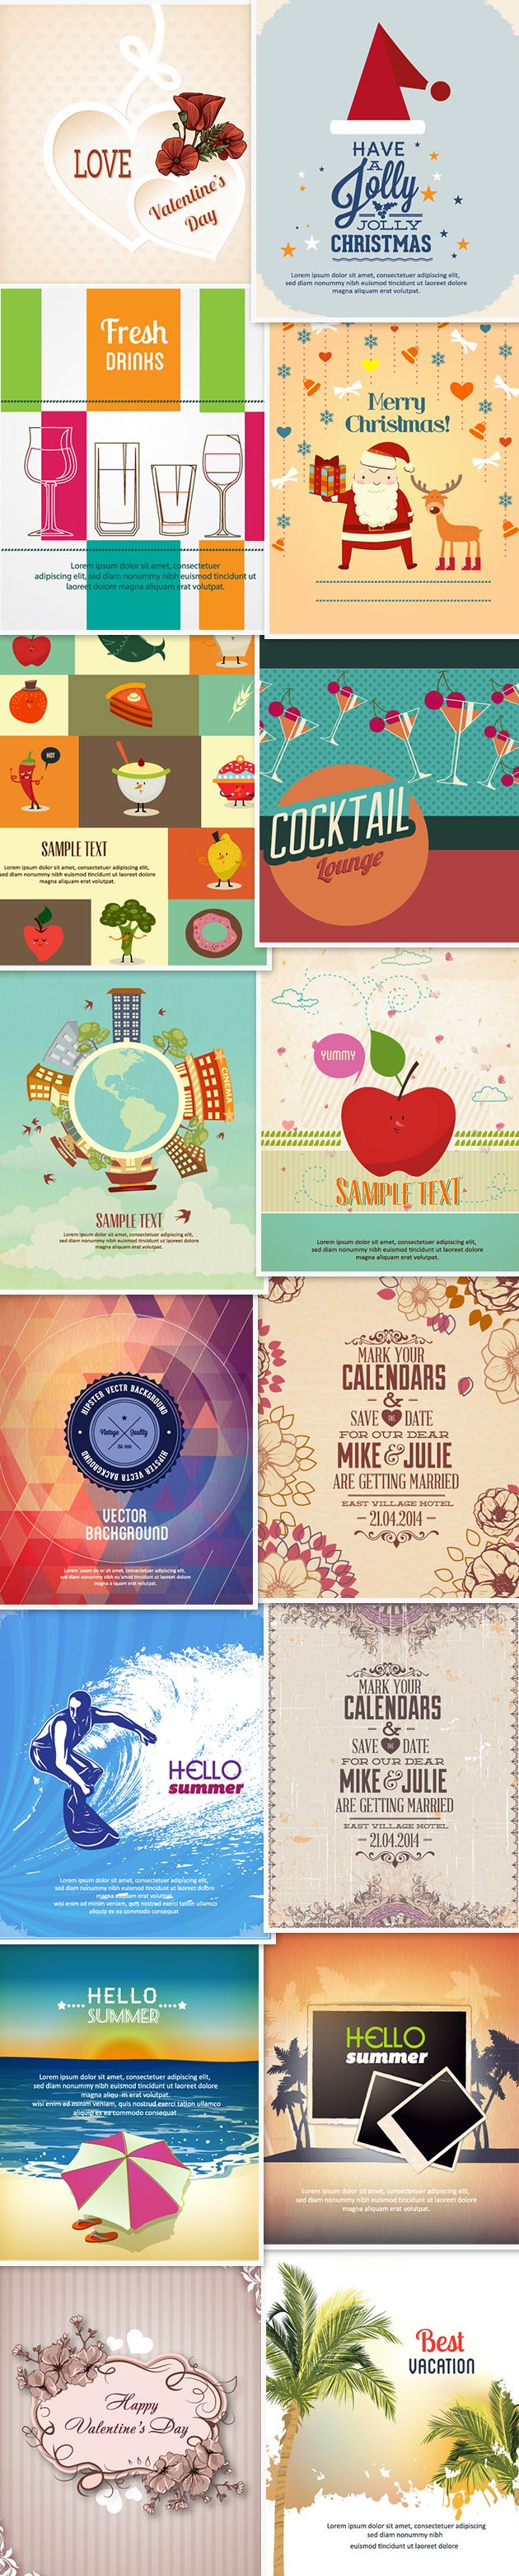 #ad The Typography Super Bundle & 357 Seamless Patterns website graphic design